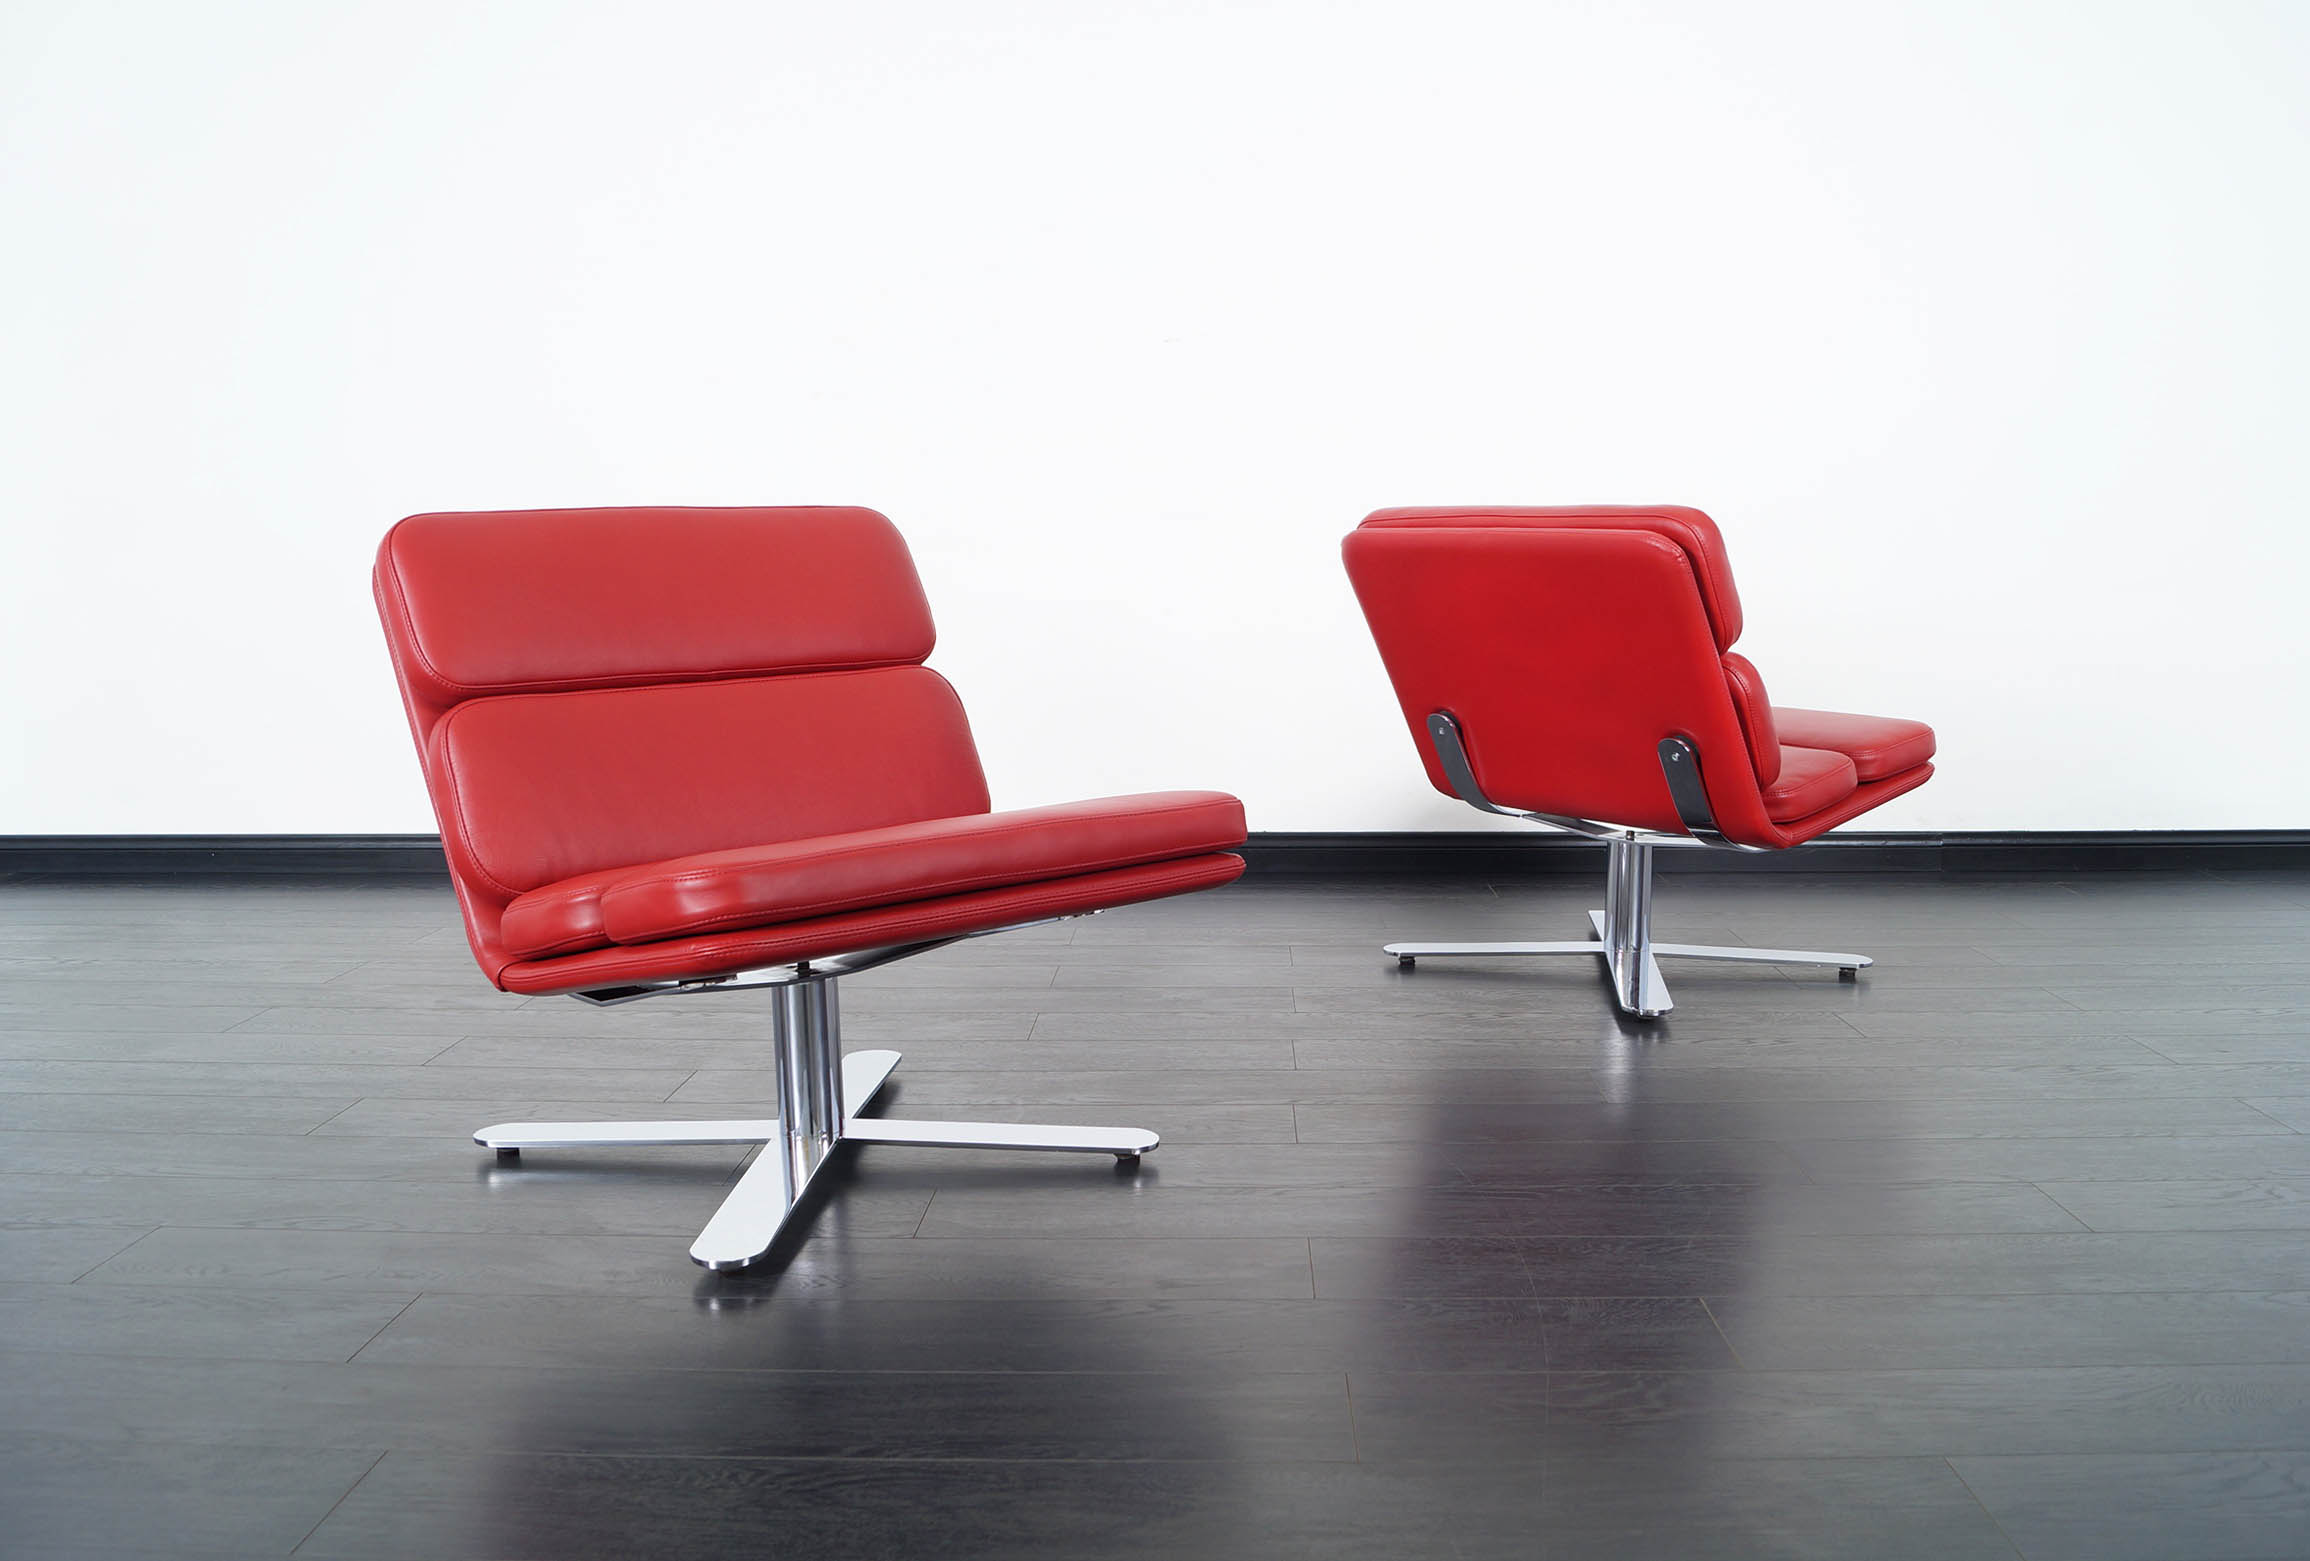 Vintage Leather Solo Chairs by John Follis